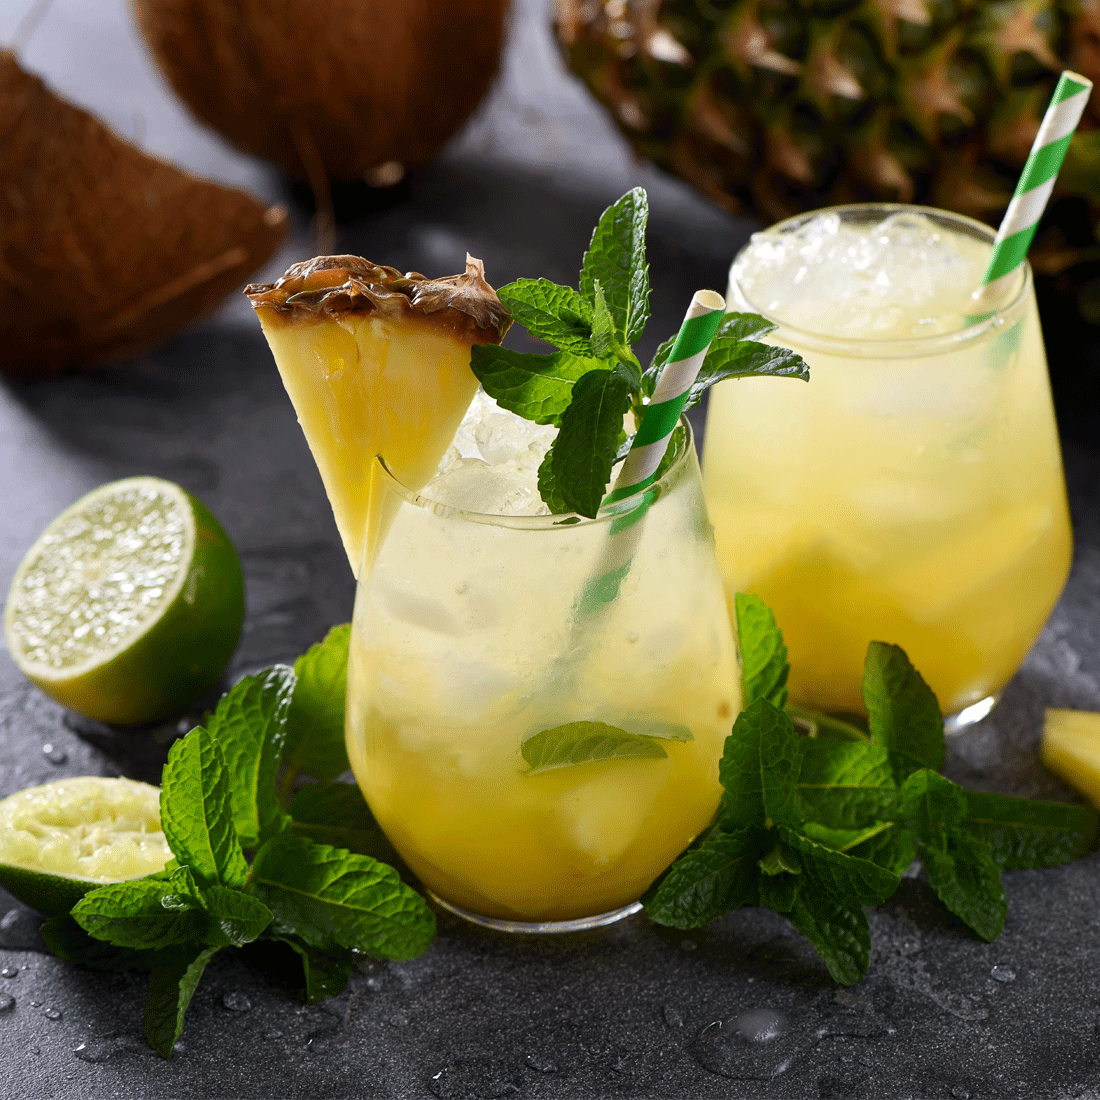 Al Rabie Pineapple Juice with Lime Ague Fresca Cocktail